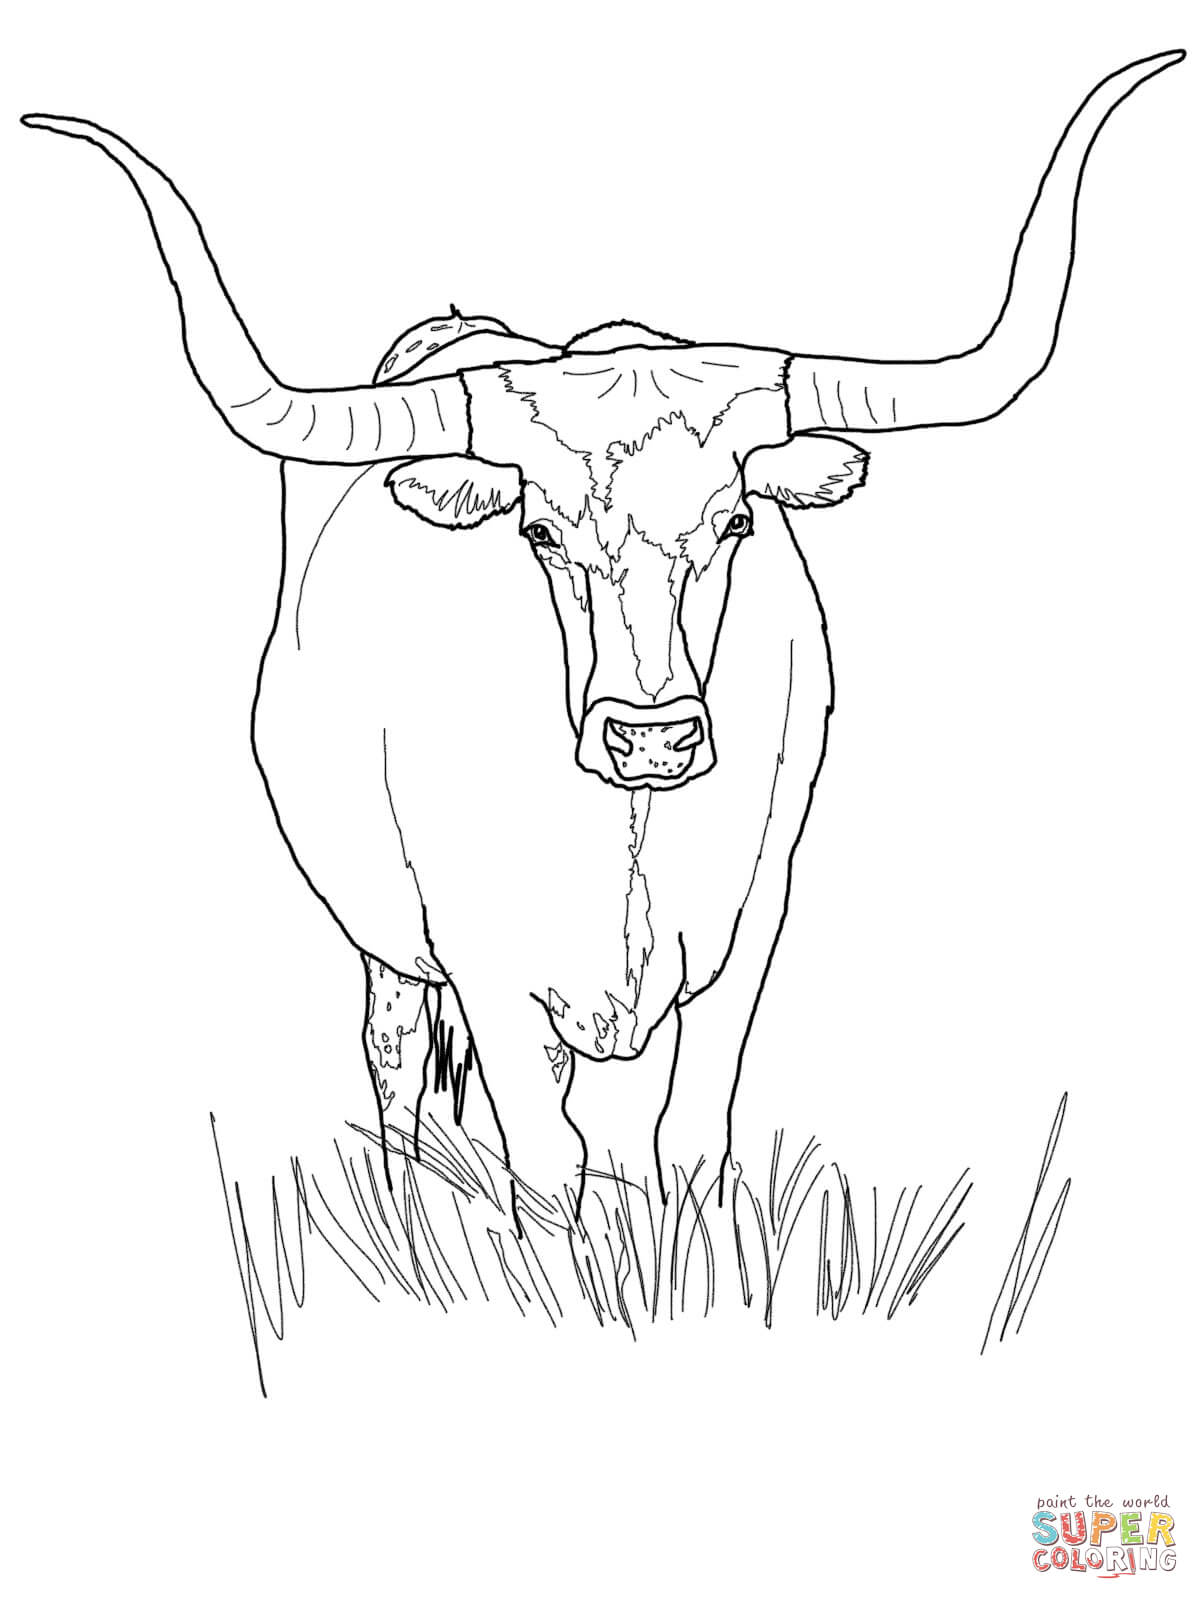 Longhorn Cattle clipart Texas Cattle Realistic Texas Longhorn